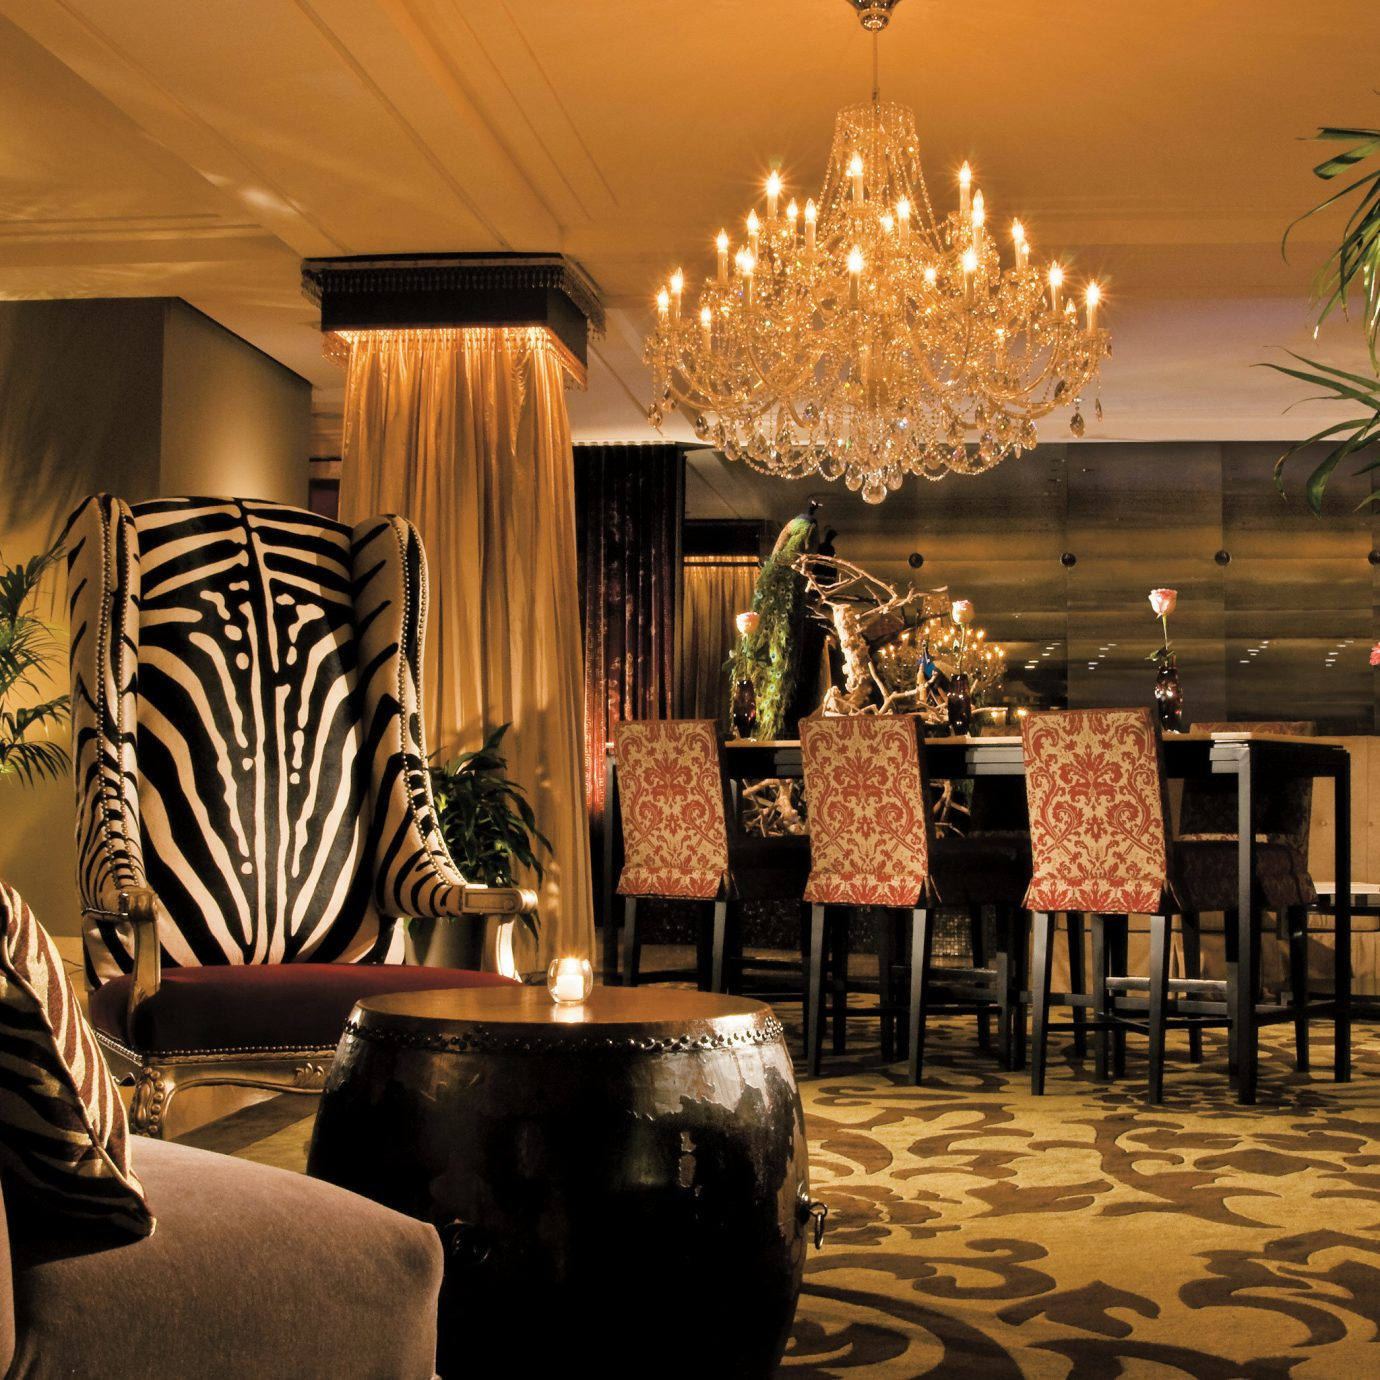 Boutique Elegant Hip Lounge Lobby restaurant function hall ballroom